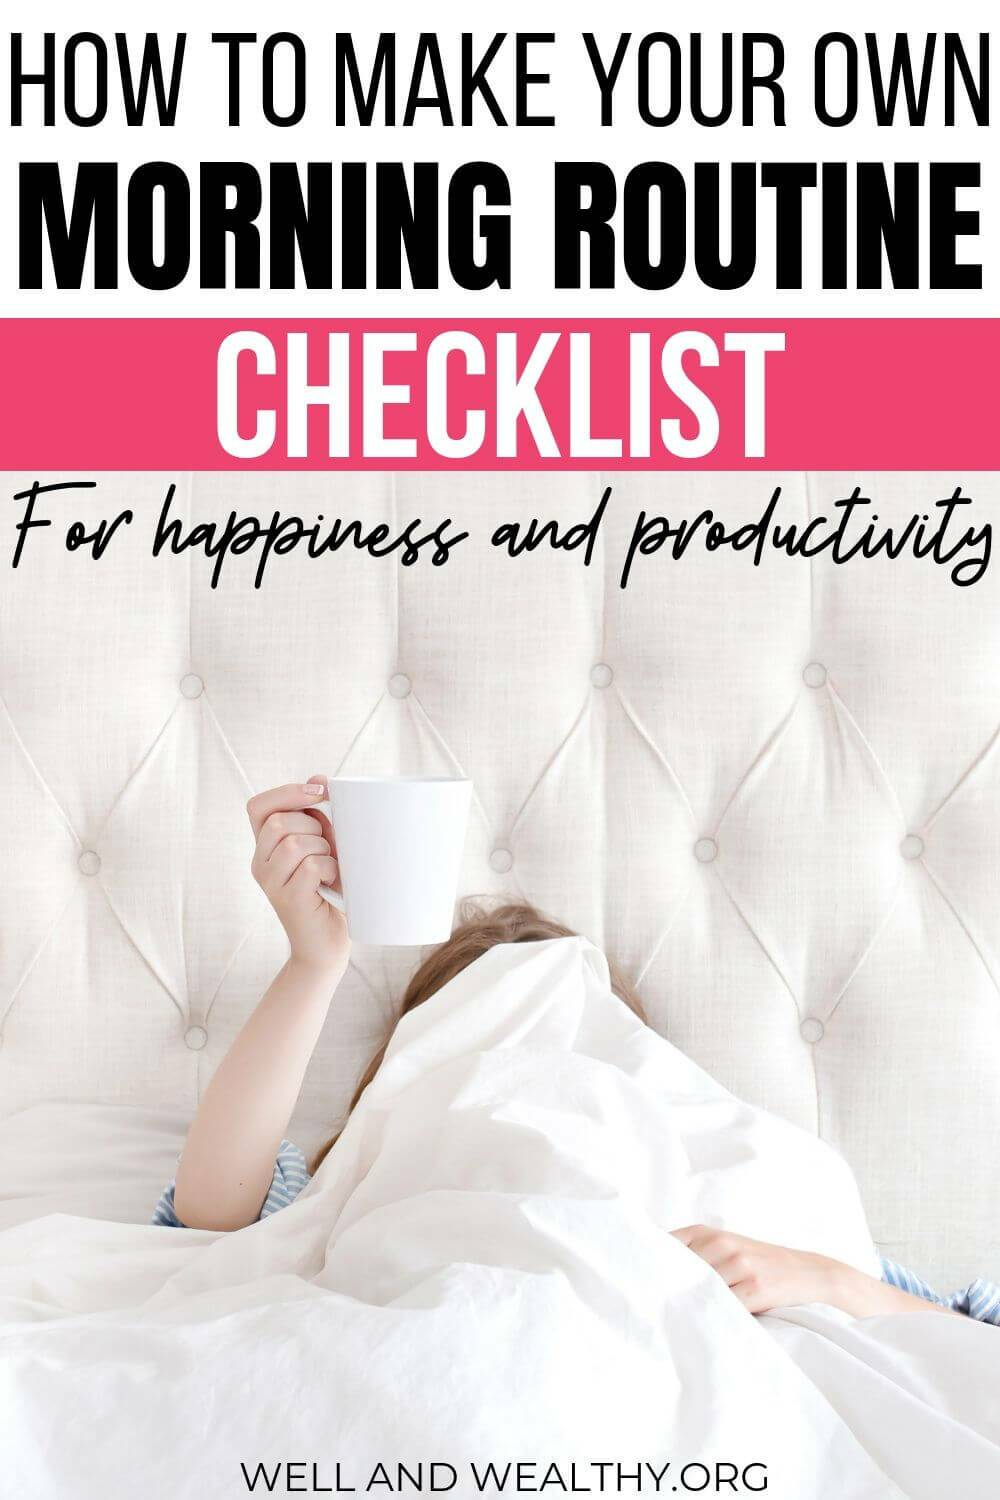 Looking for adult morning routine ideas to help make your life healthy and productive? Then this post will help you, especially for women, you will learn how to make an amazing morning routine checklist. These tips will help you get in that all-important self-care before work. PLUS don't forget to grab your free printable checklist! #morningroutine #freeprintable #getorganized #selfcare